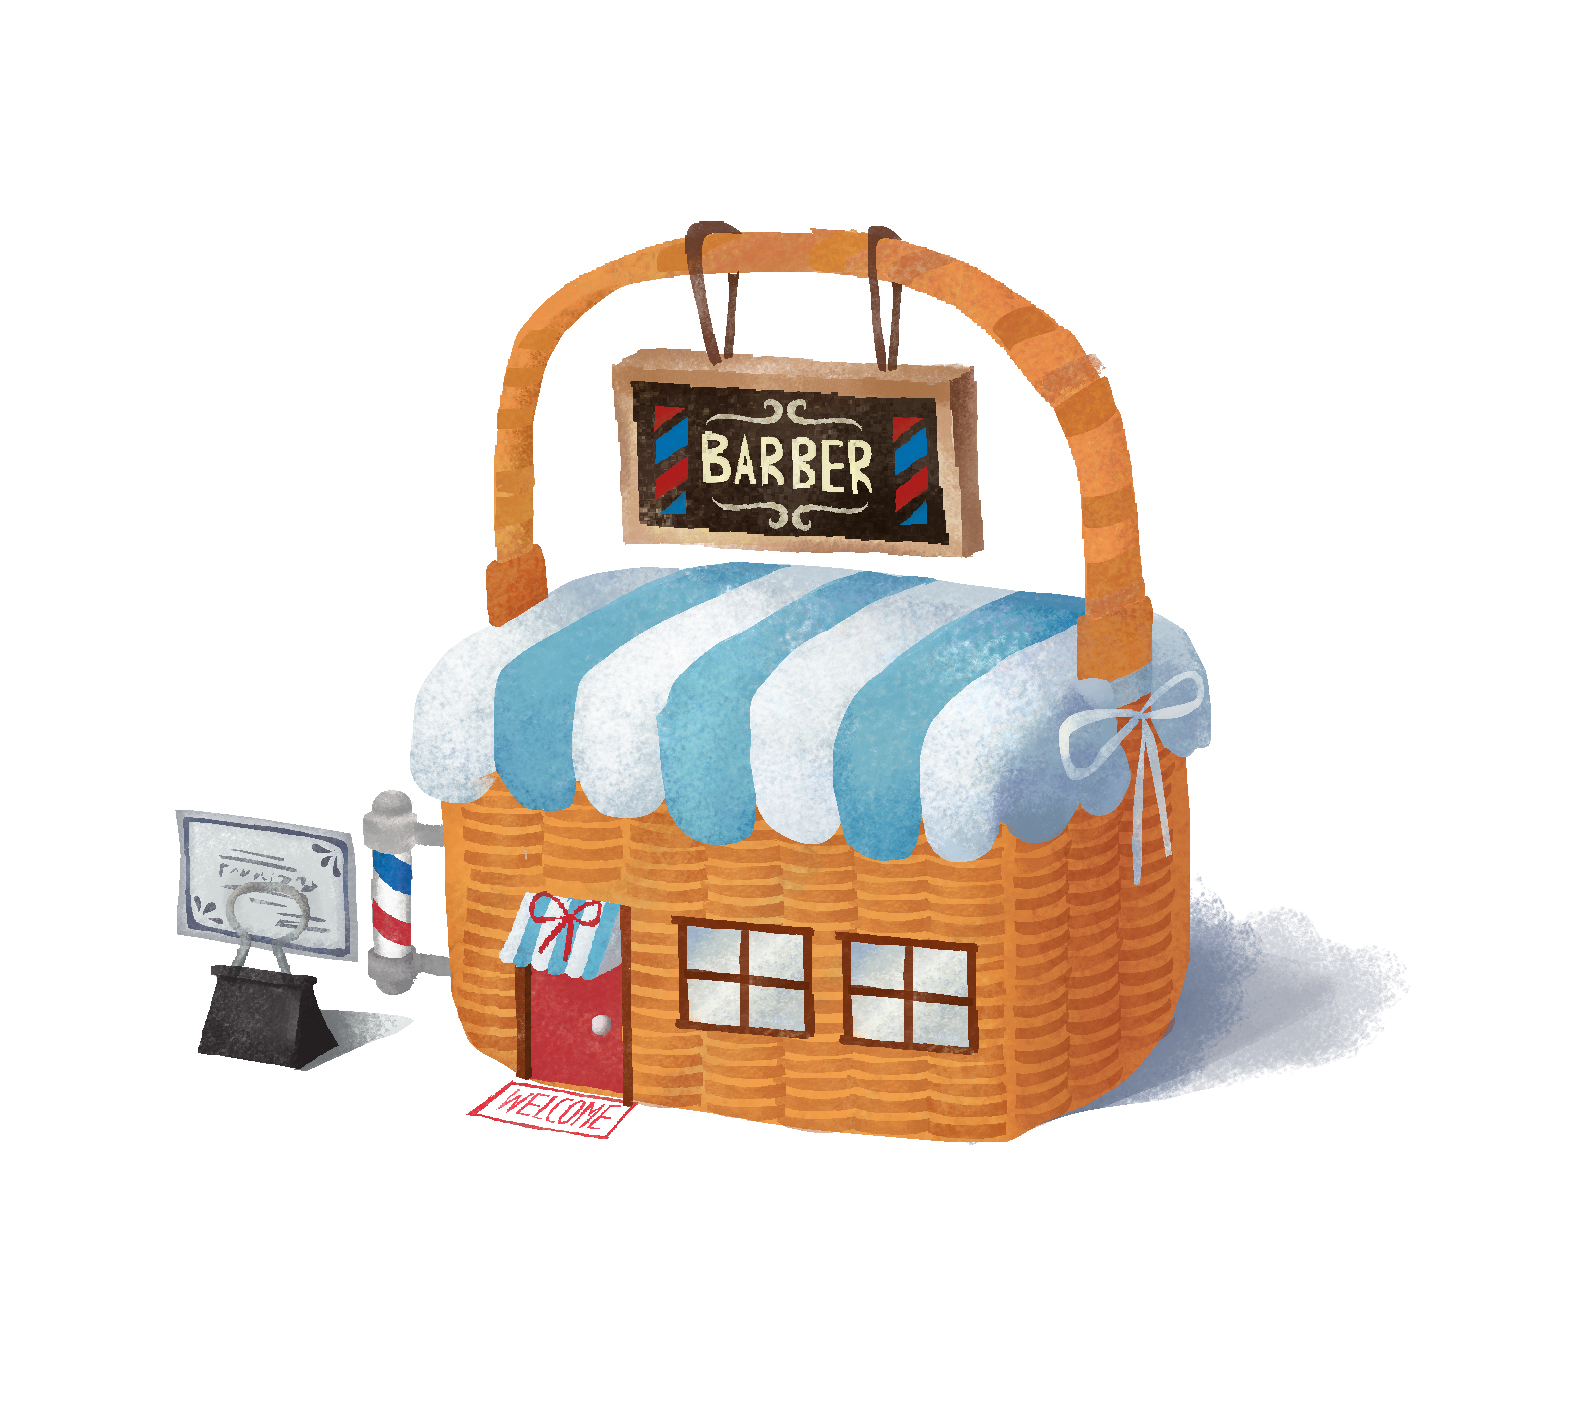 BARBER SHOP - Where Bread/Milk works for his customers to be decorated. This is important location for the show.